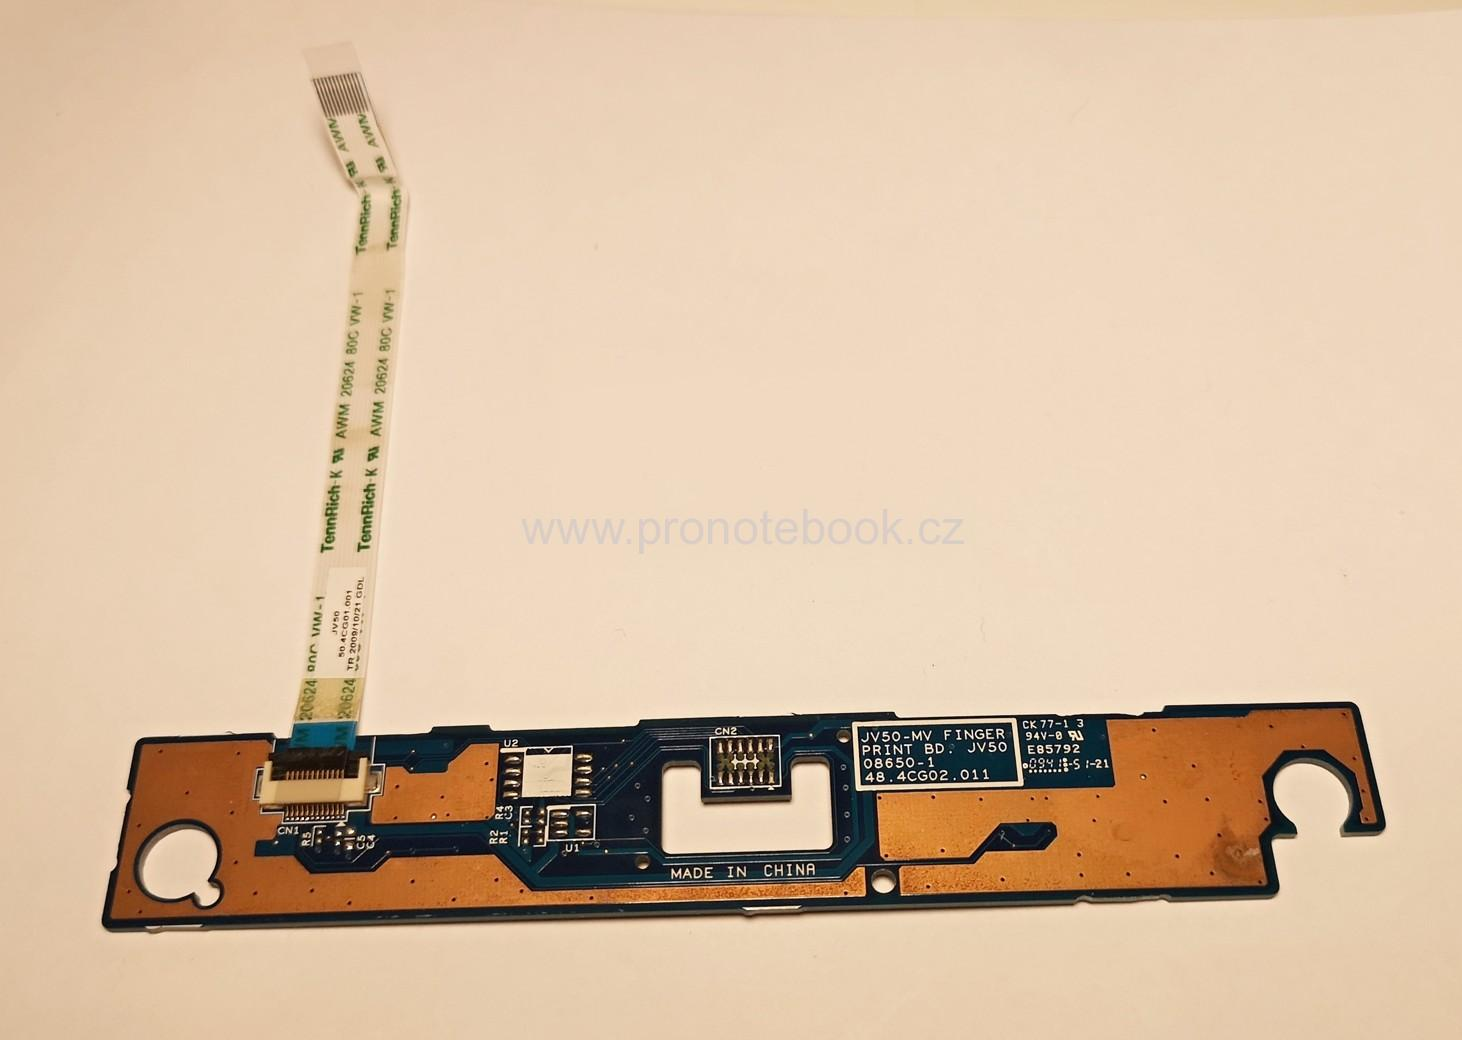 Acer Aspire 5740 JV50-MV FINGER PRINT BD touchpad button board cable 48.4CG02.011 SKLADEM